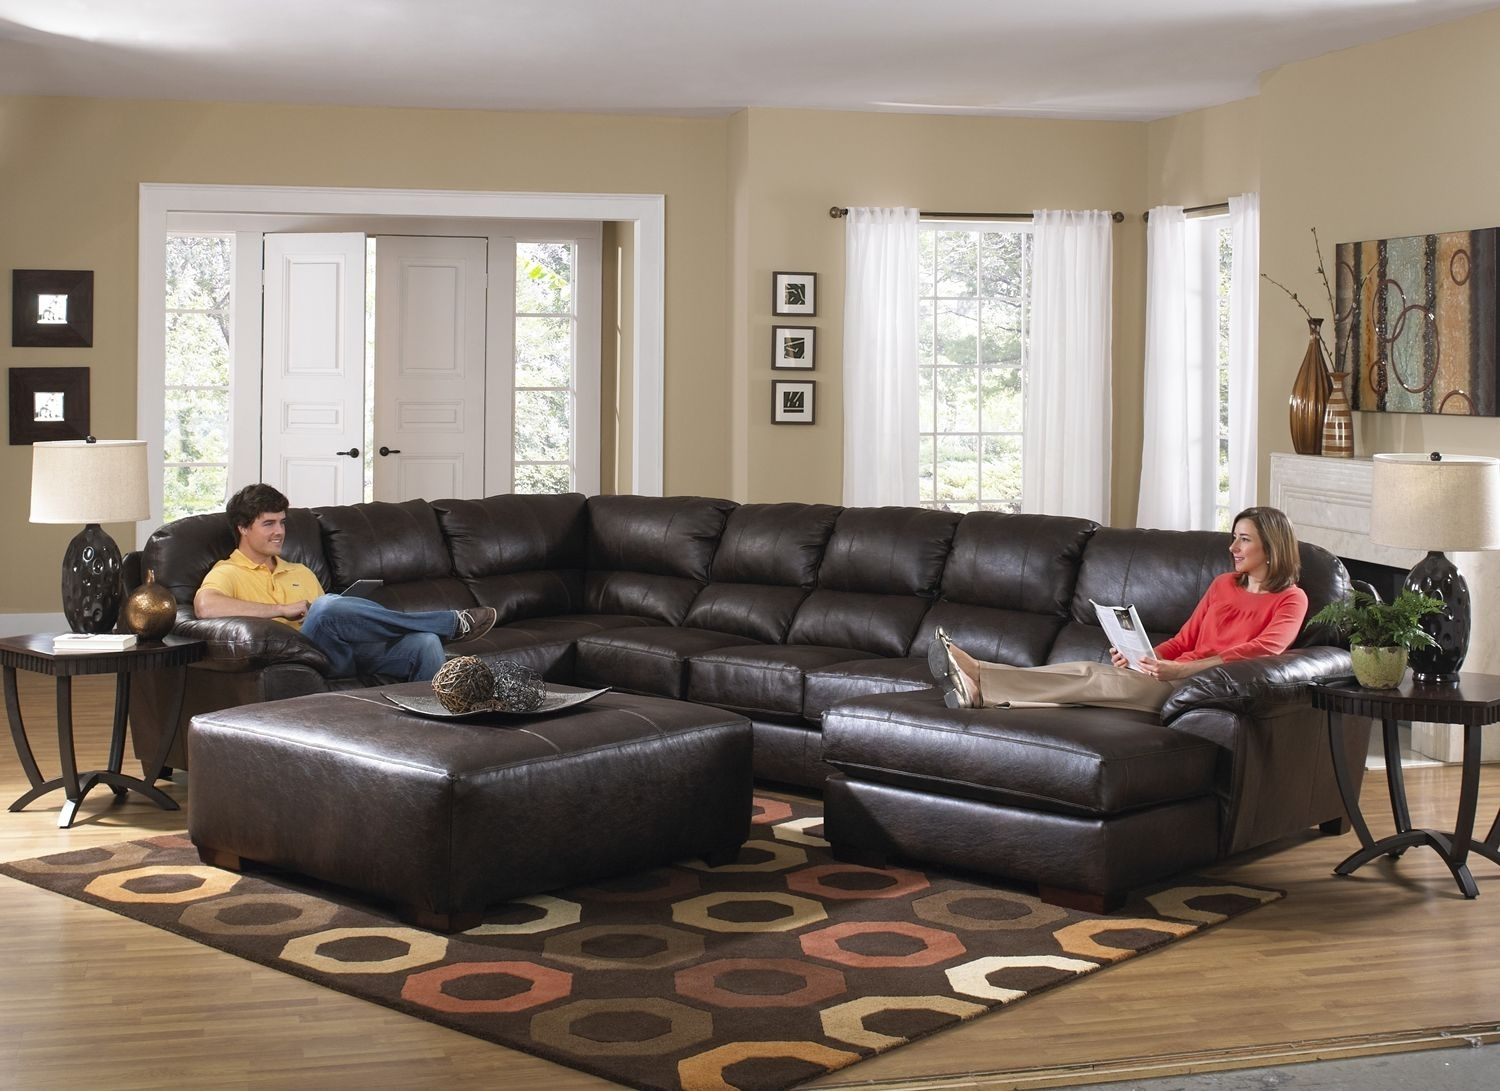 Lawson Godiva U Shape Sectional Sofa W/ Chaise In Chocolate Bonded Throughout Sectionals With Oversized Ottoman (View 8 of 15)